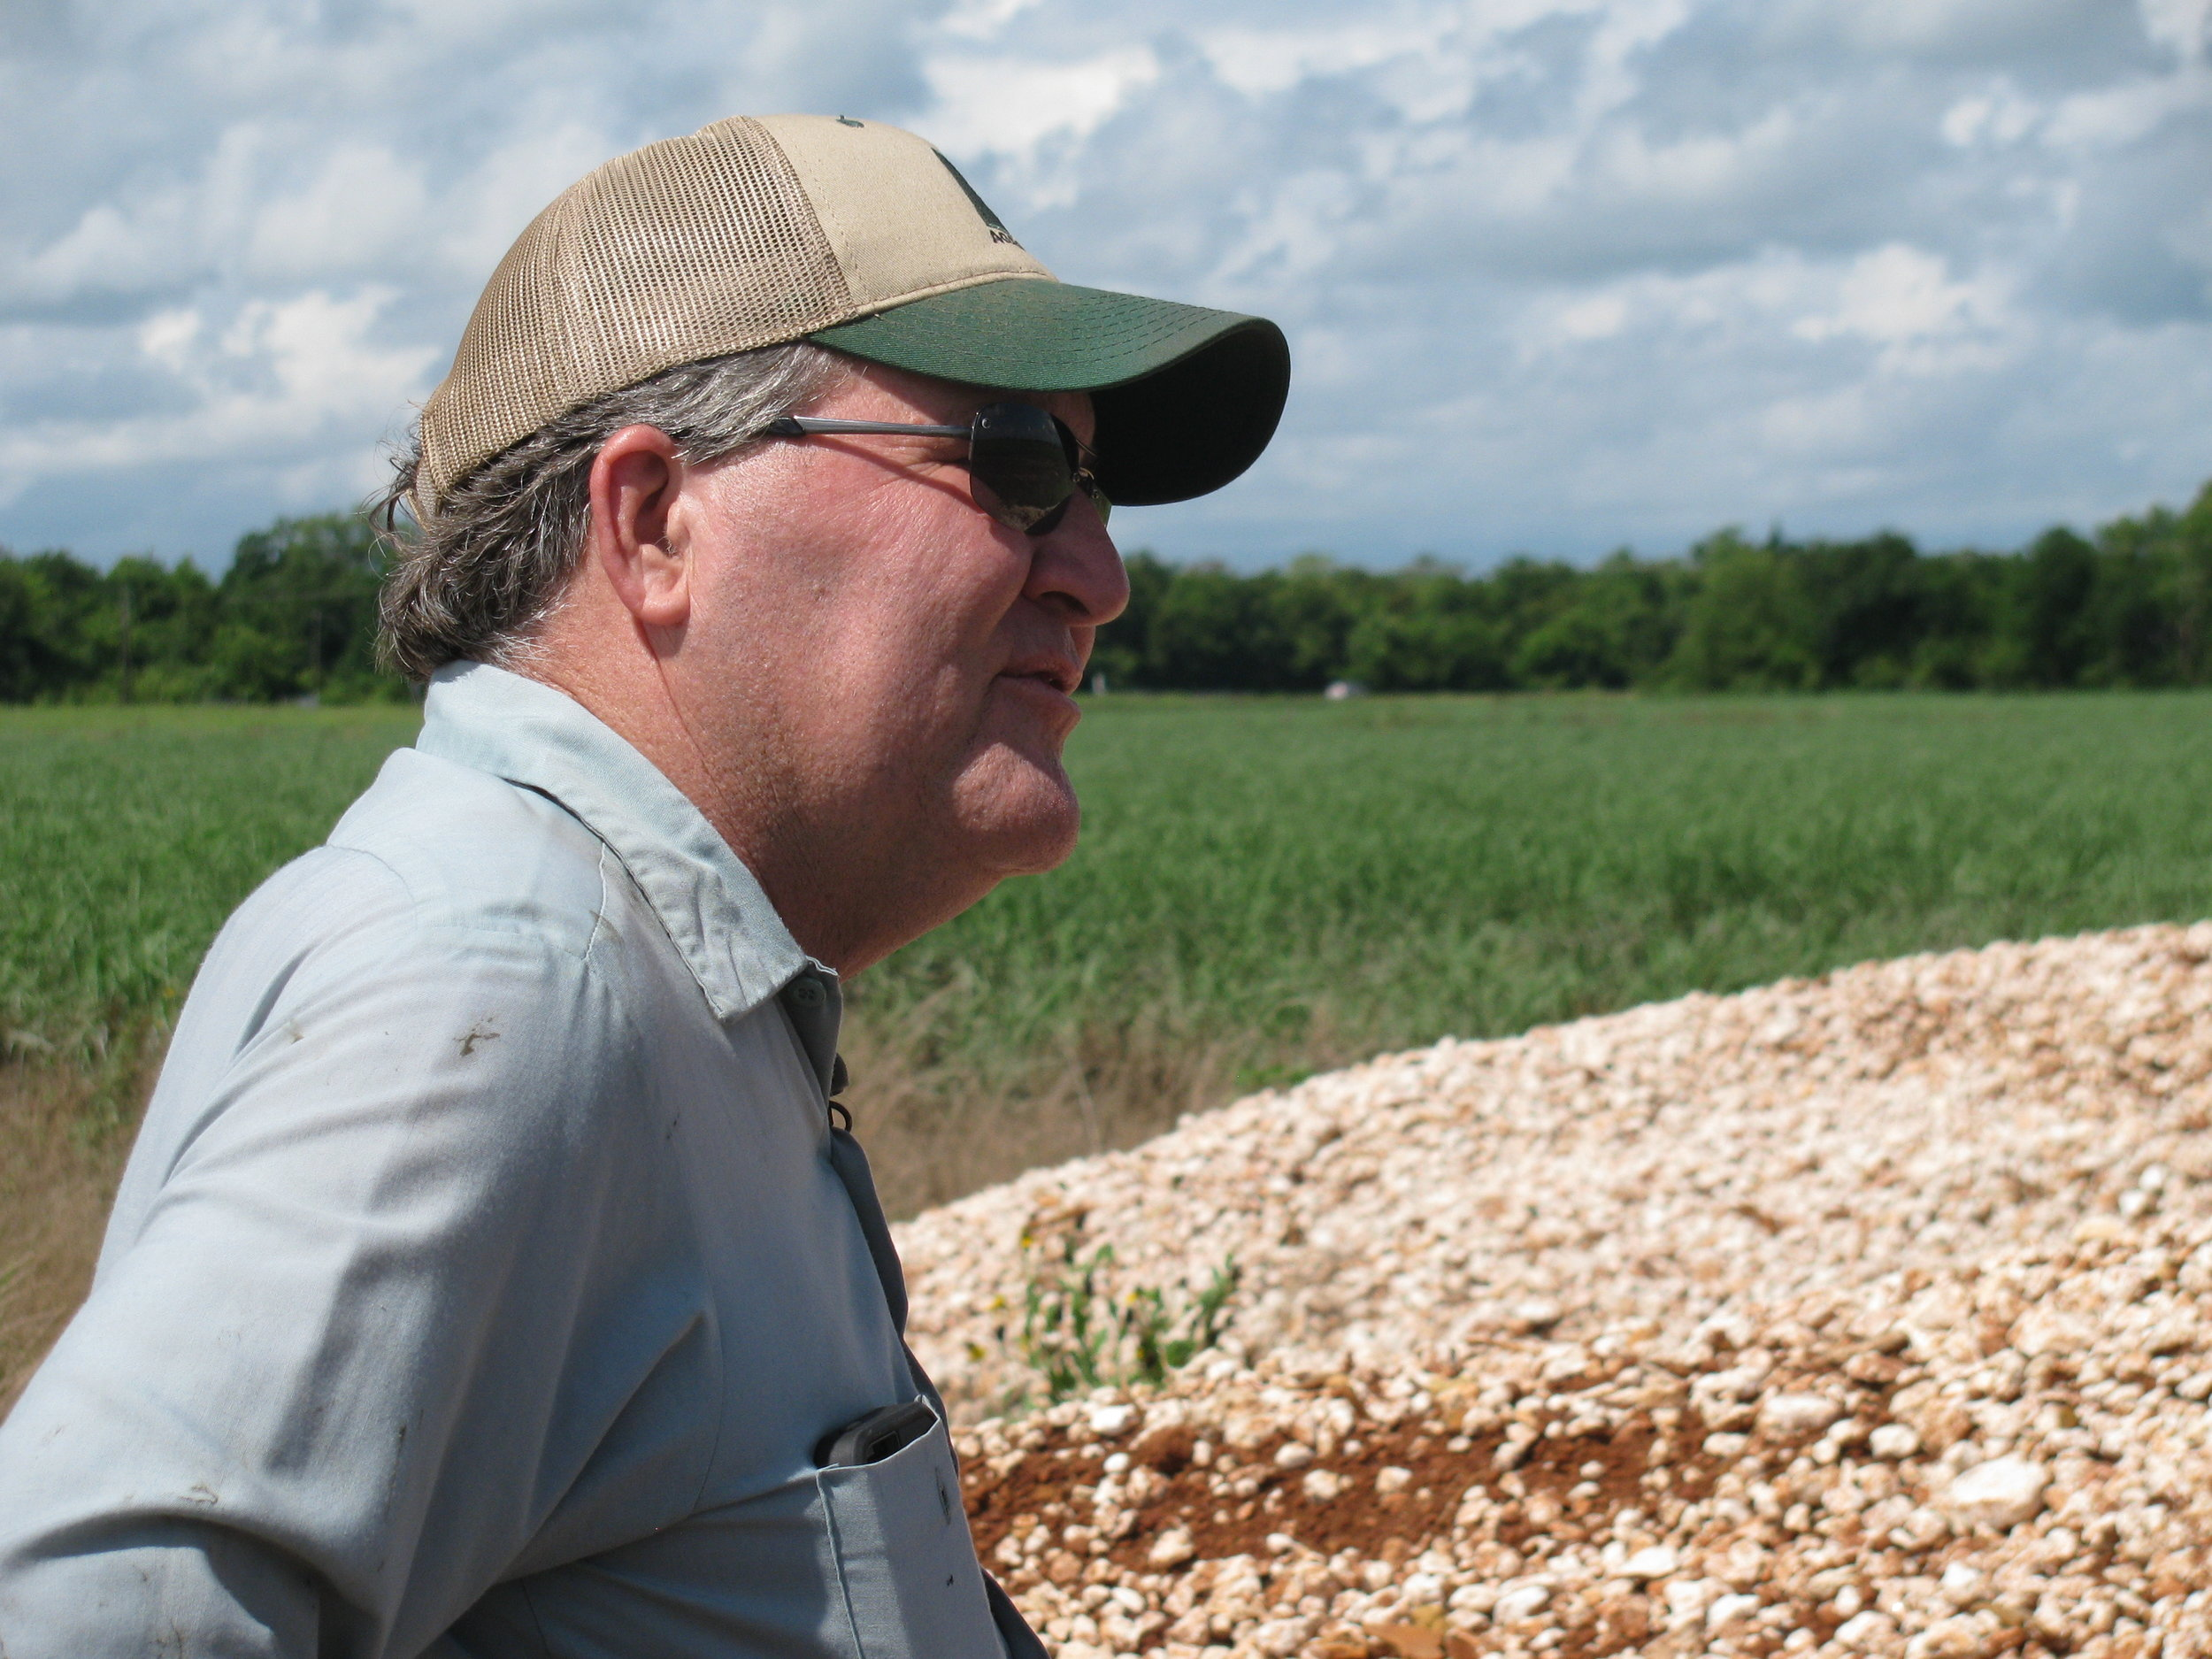 Vacherie sugarcane farmer Greg Gravois is relieved to hear that EPA is rescinding the WOTUS rule.